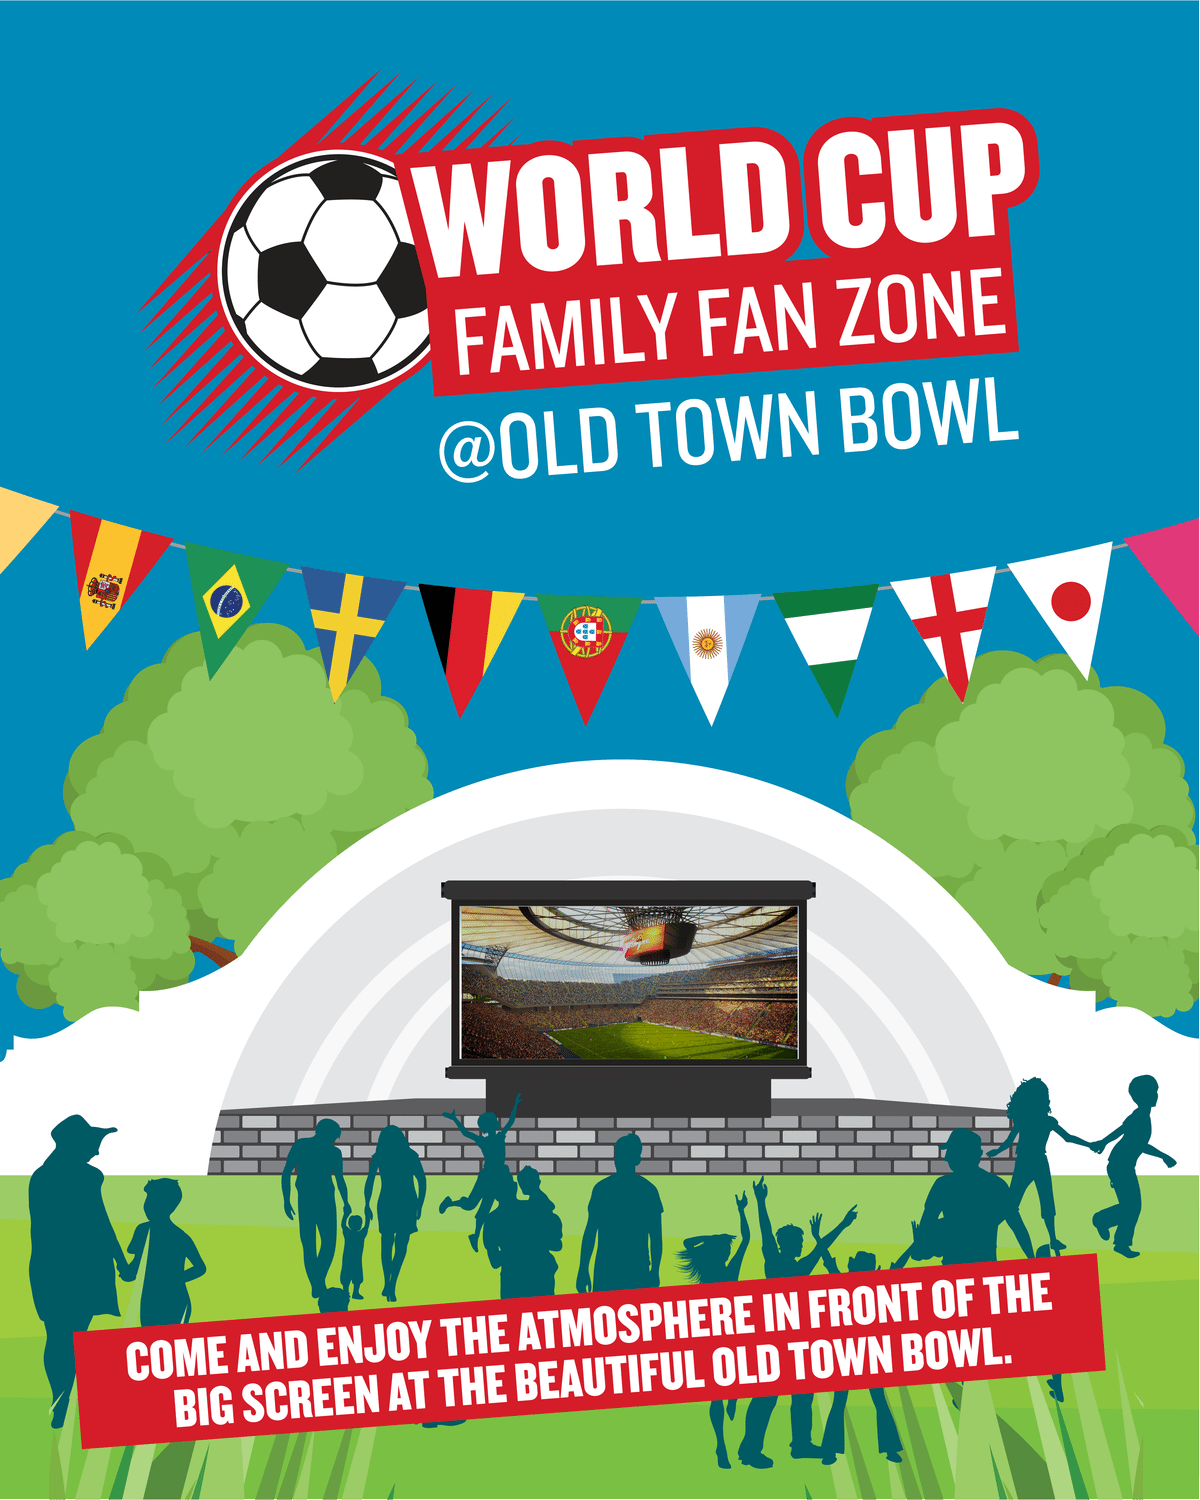 World Cup fever to hit Swindon with special screenings of England games at the Old Town Bowl